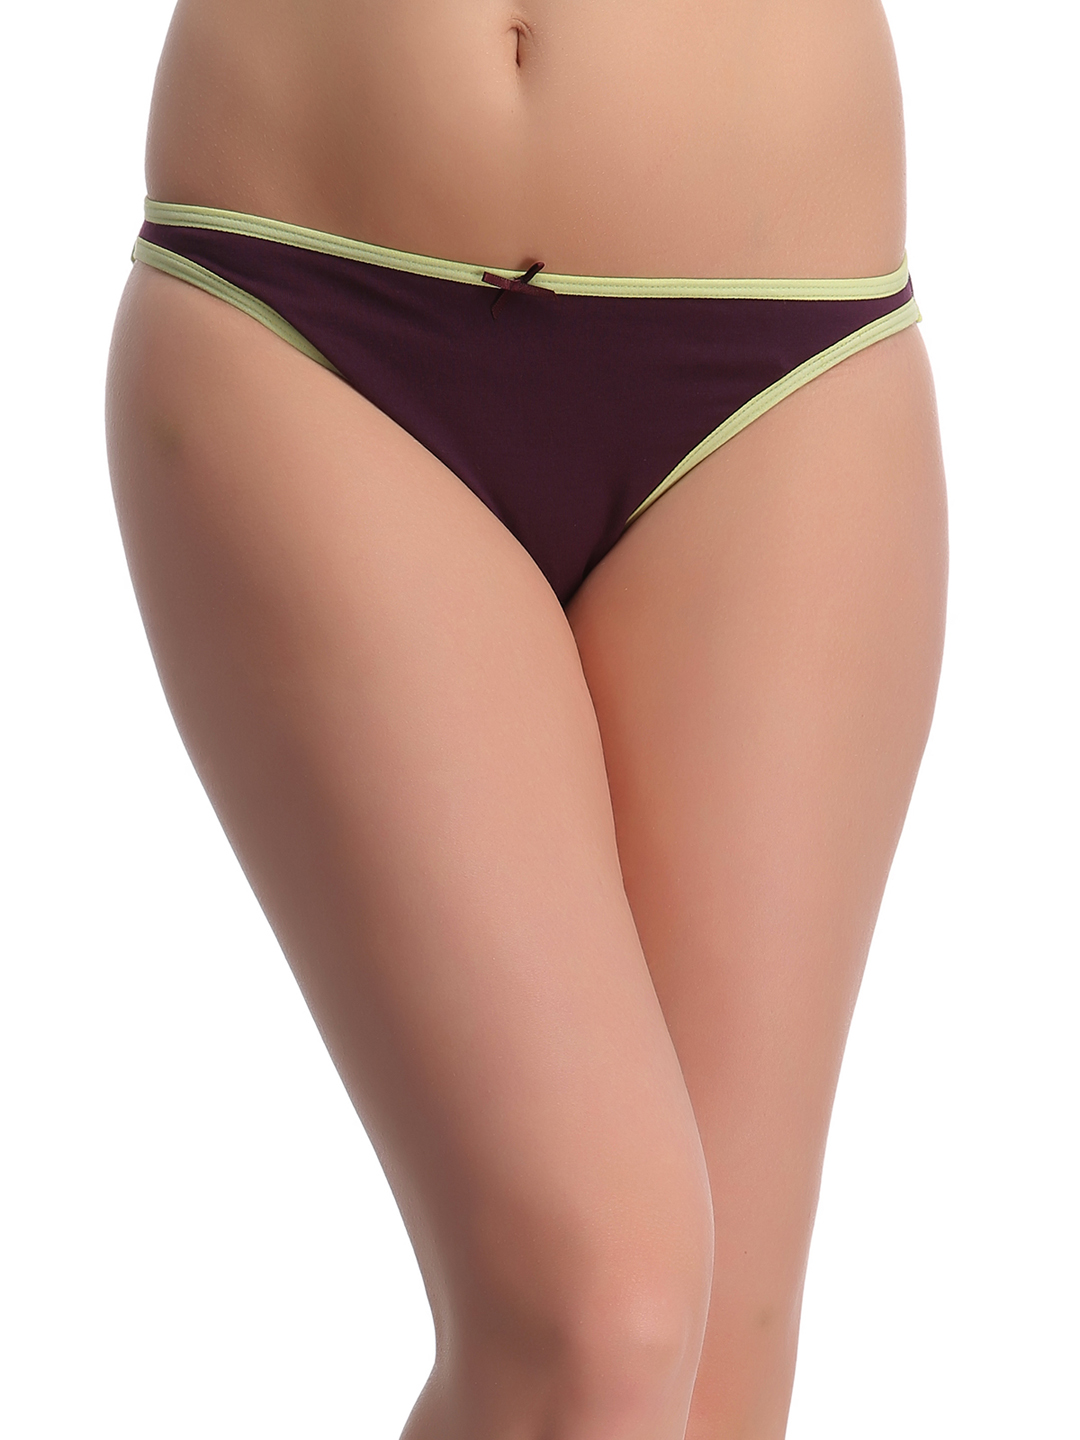 Clovia Black Cotton Lycra Bikini With Light Green Highlights - Green  available at Nykaa for Rs.150